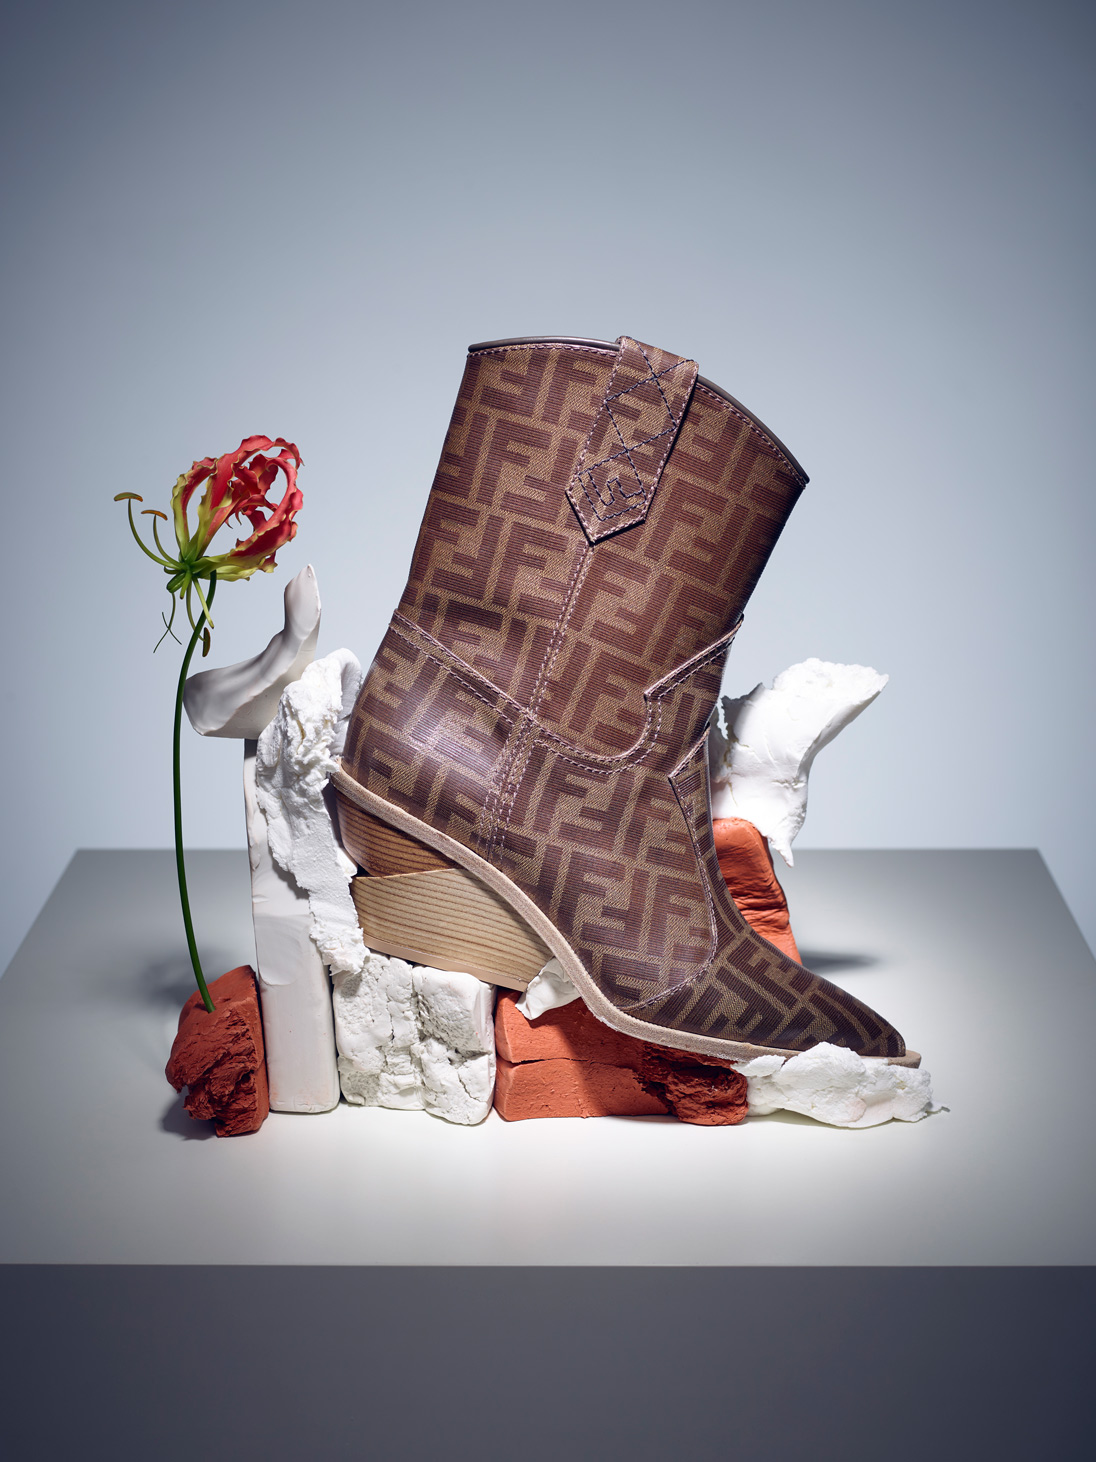 Today the cowboy boot represents adventure, and that mood is neatly summed up in Fendi's glazed logo-motif pair